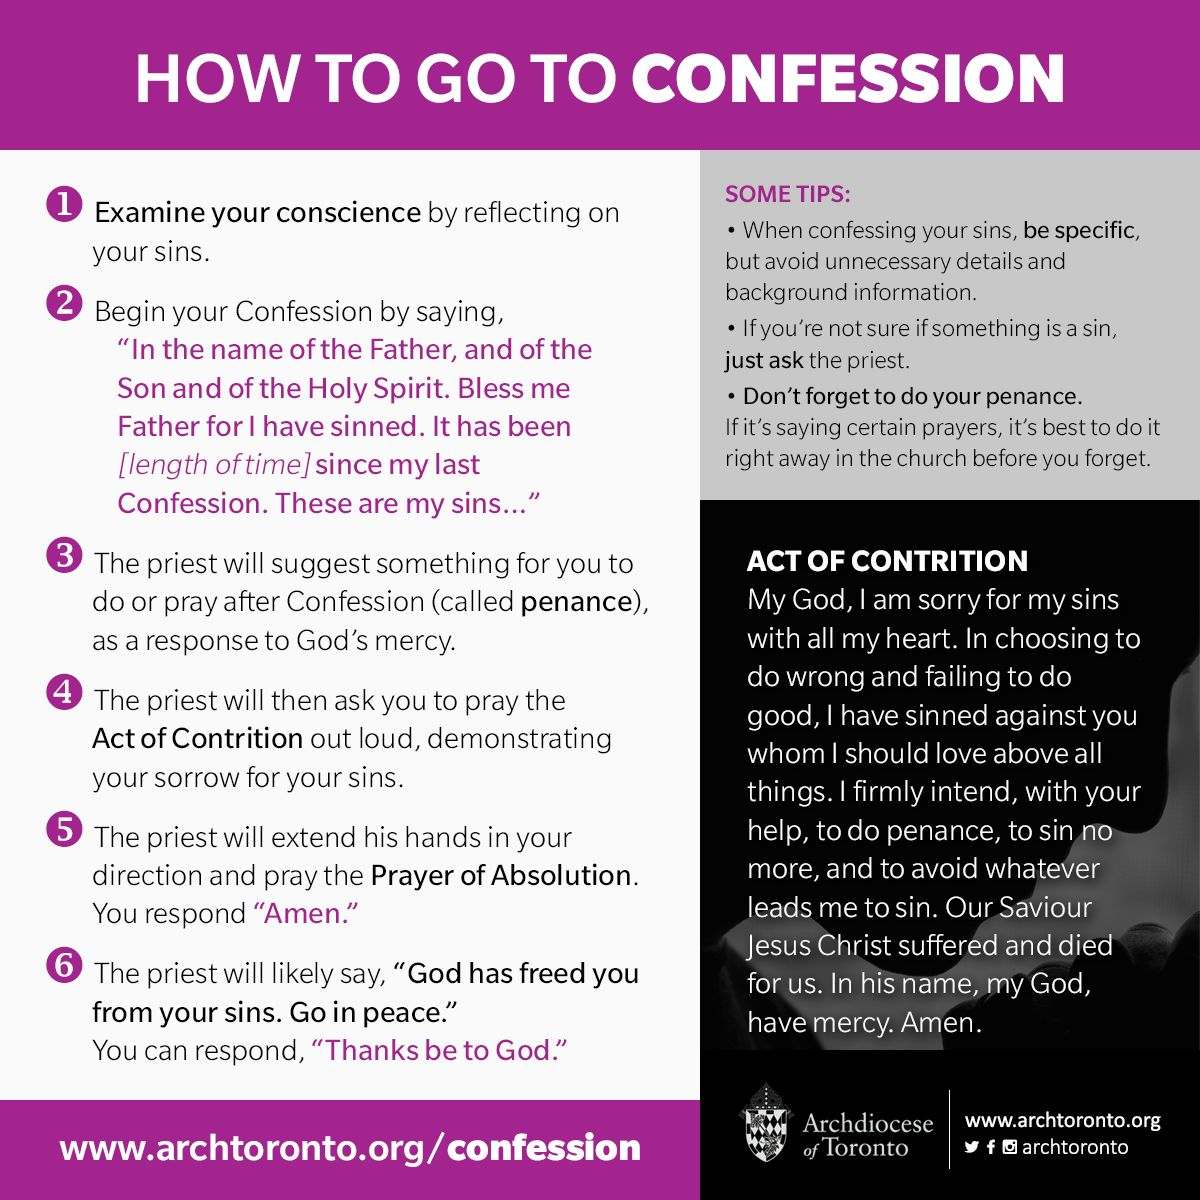 How To Go To Confession Http Www Archtoronto Org Confession Catholic Confession Reconciliation For Catholic Confession Catholic Teaching Catholic Beliefs